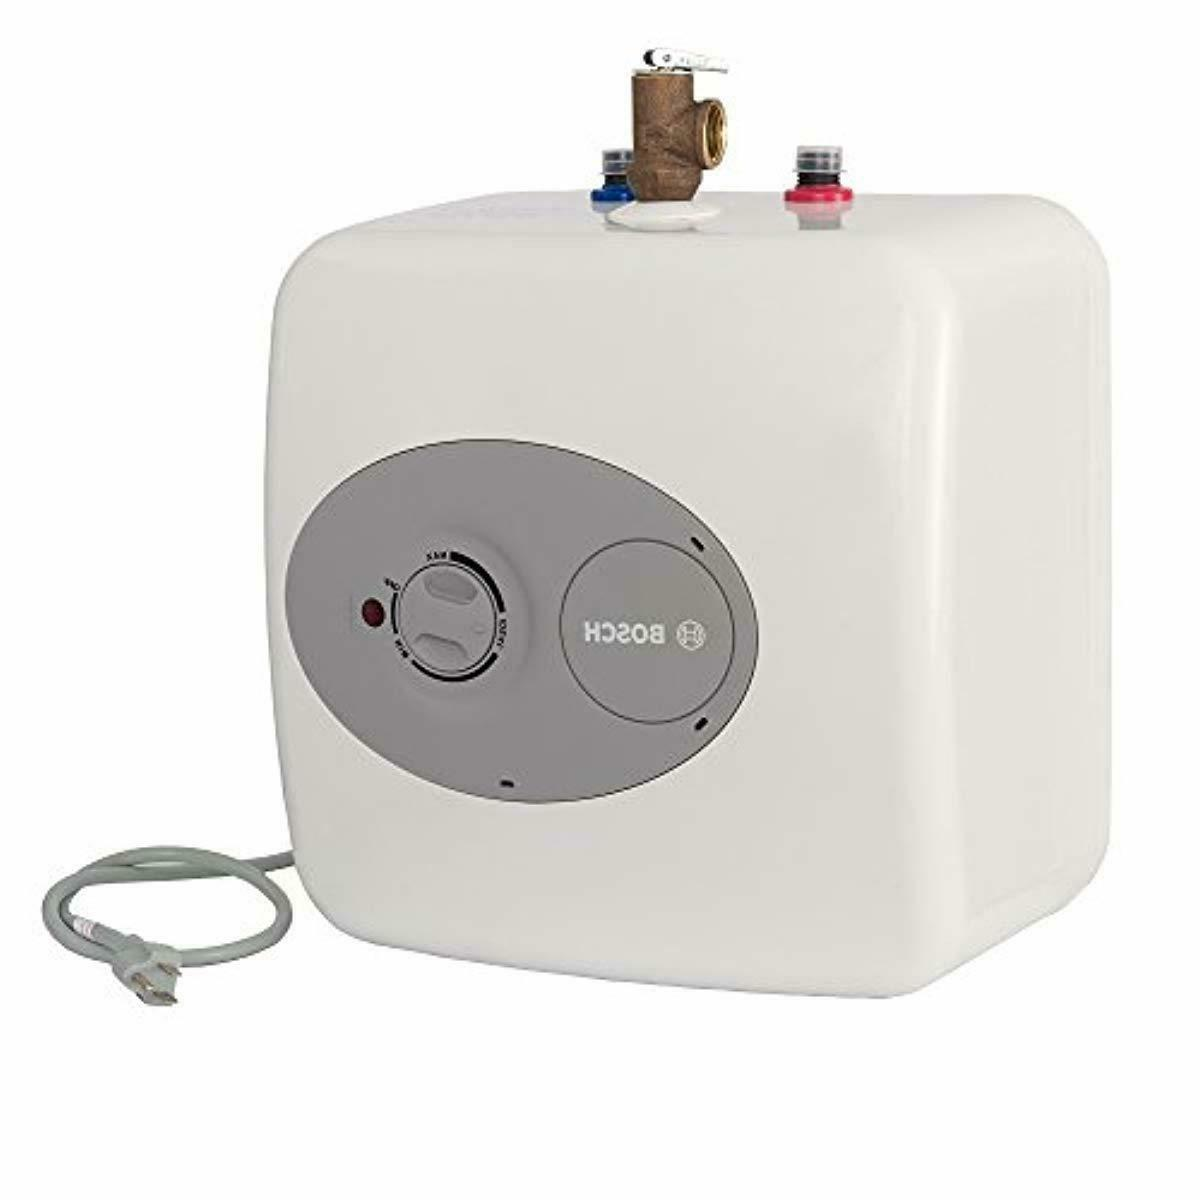 2 5 gallon electric hot water heater